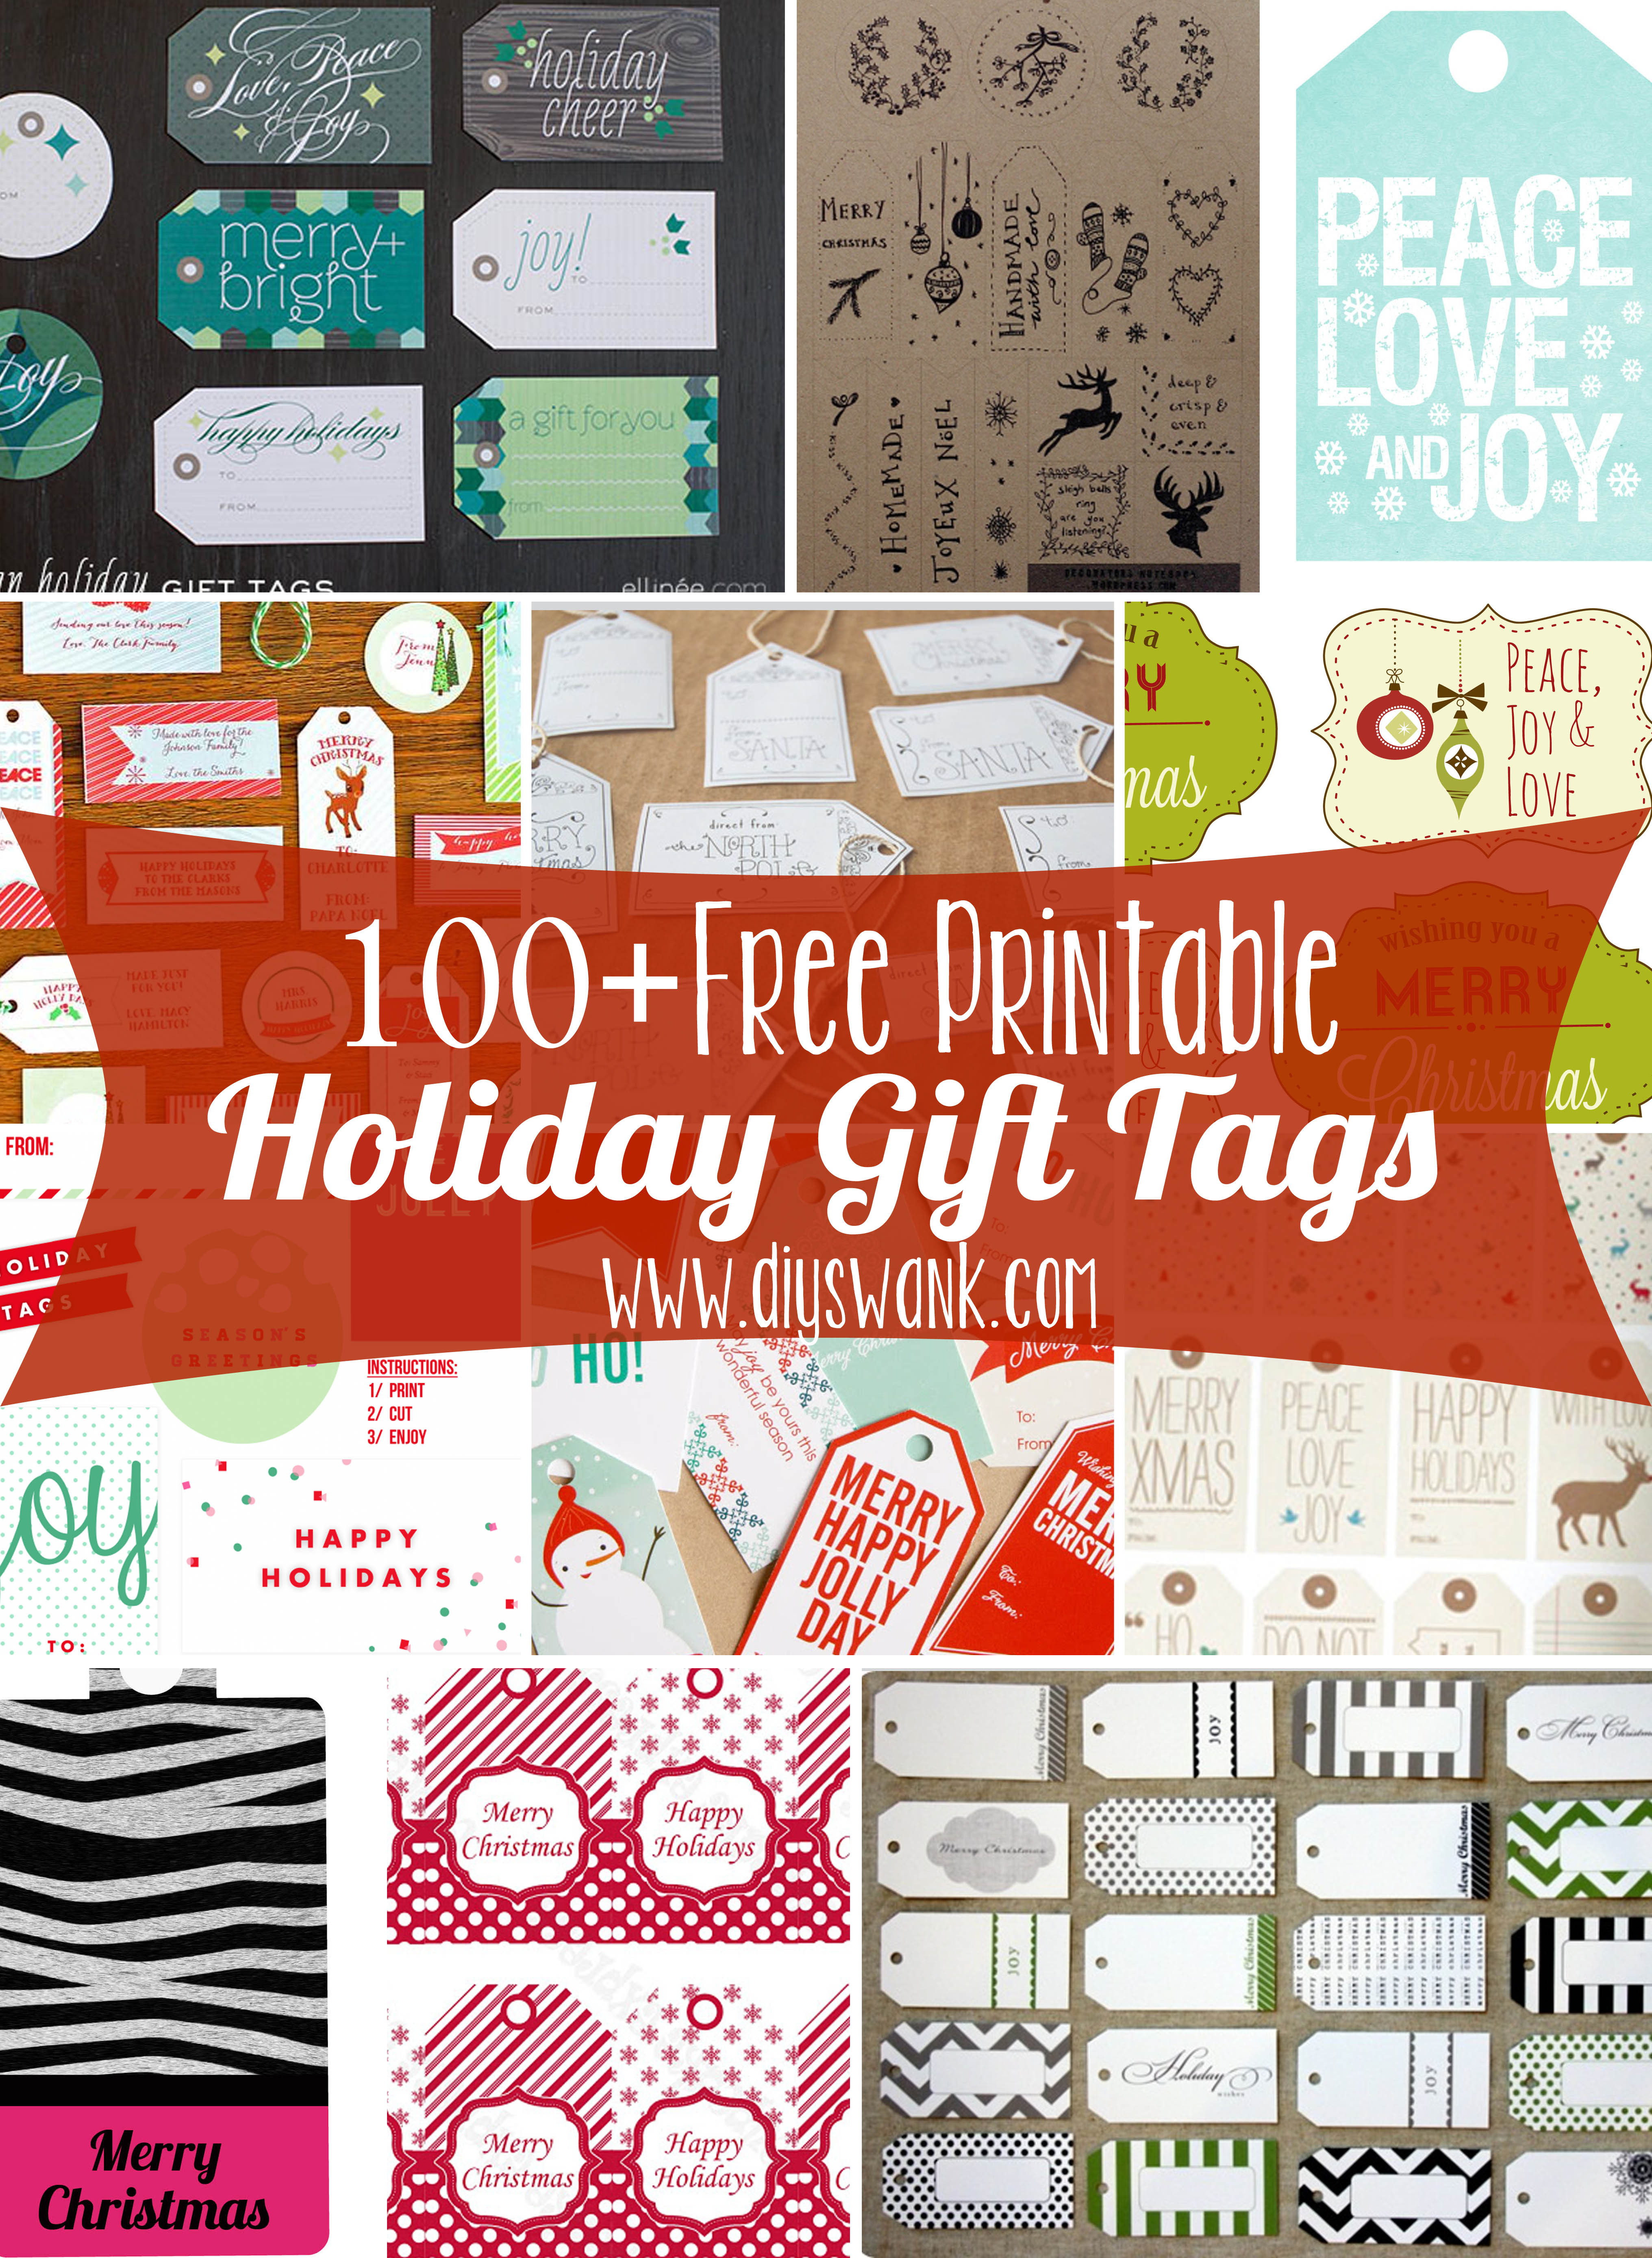 Best ideas about DIY Gift Tags Free Printable . Save or Pin Free Printable Holiday Gift Tags Now.